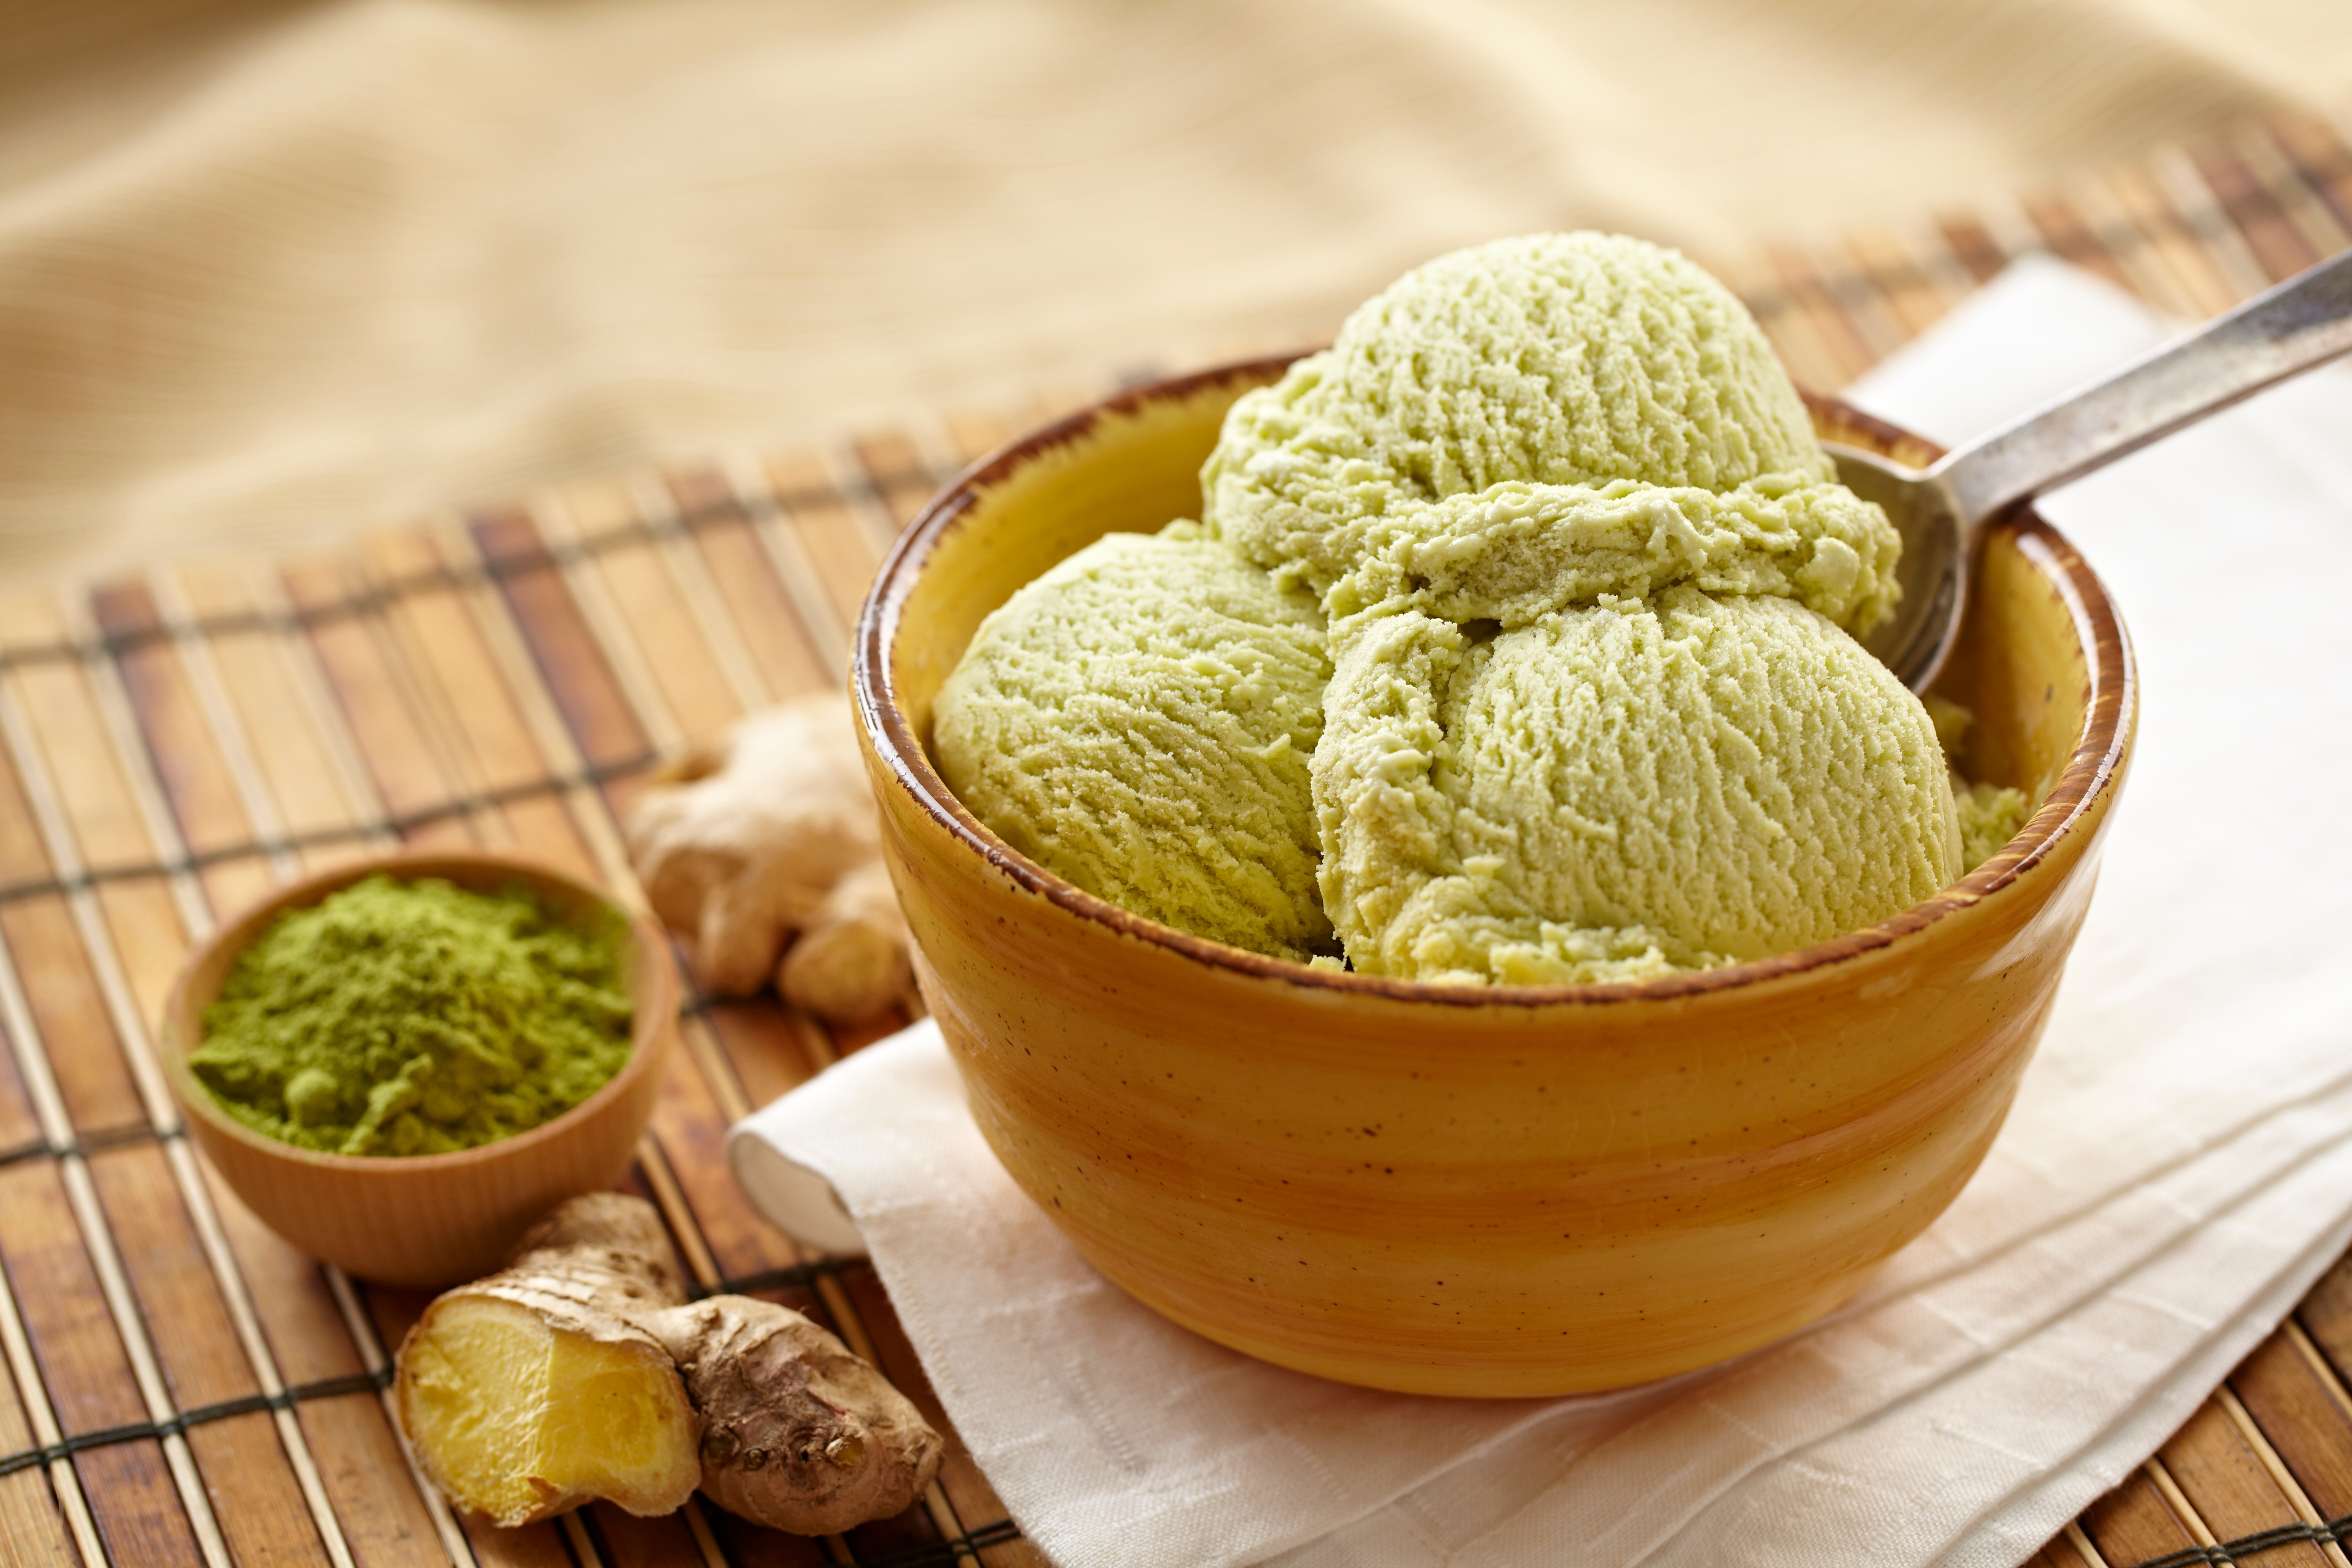 Thrill Your Palate with Tea-rrific Local Ice Cream